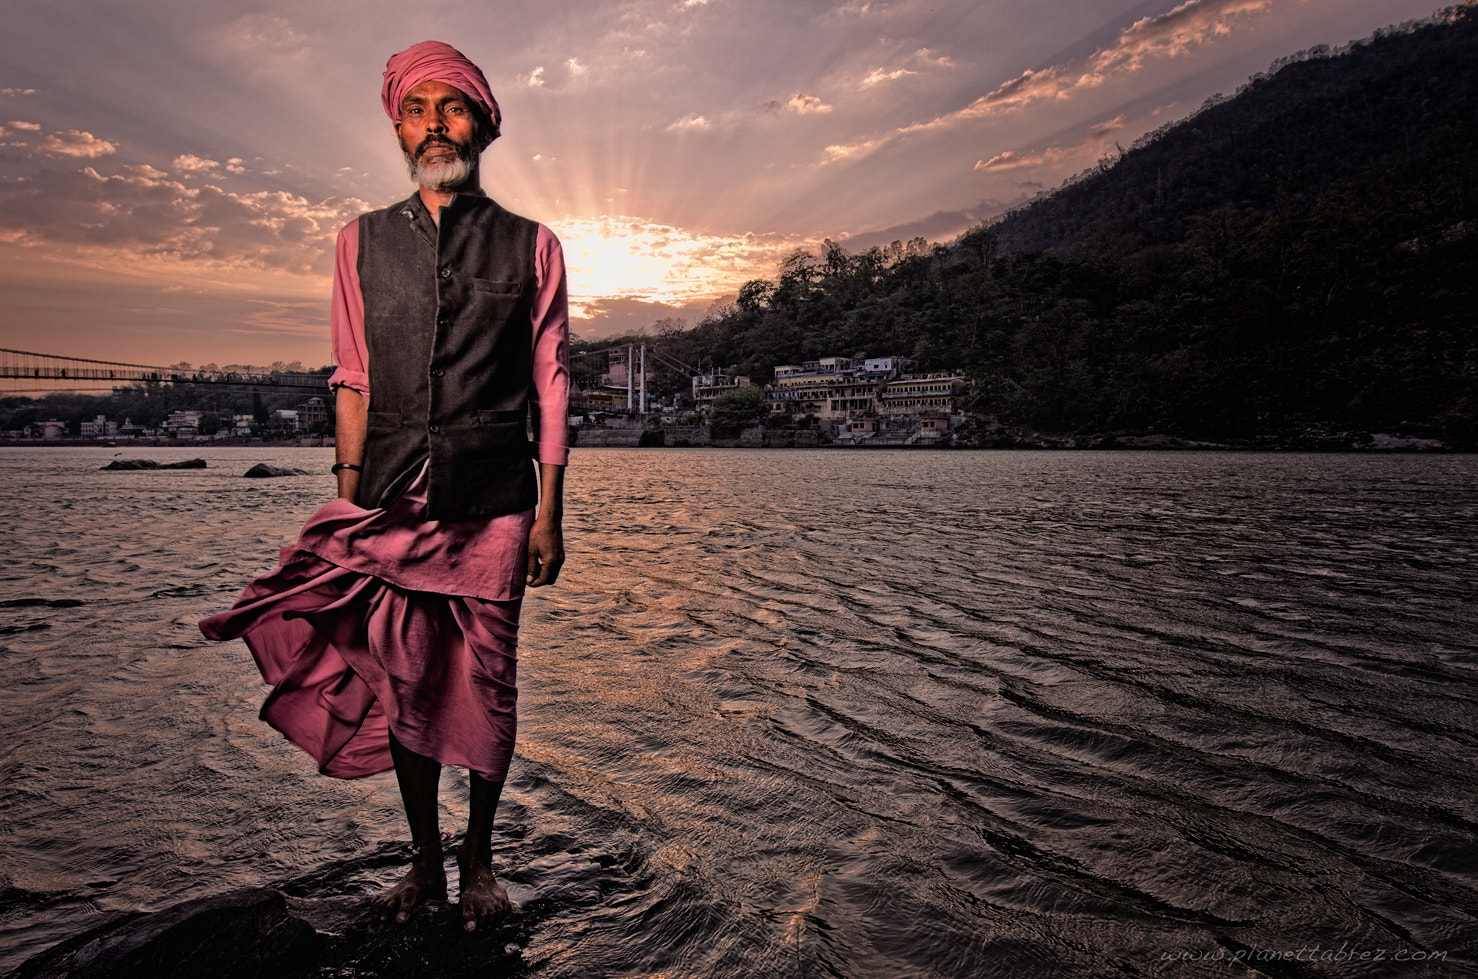 Photograph By the Ganges by tabrez ahmad on 500px